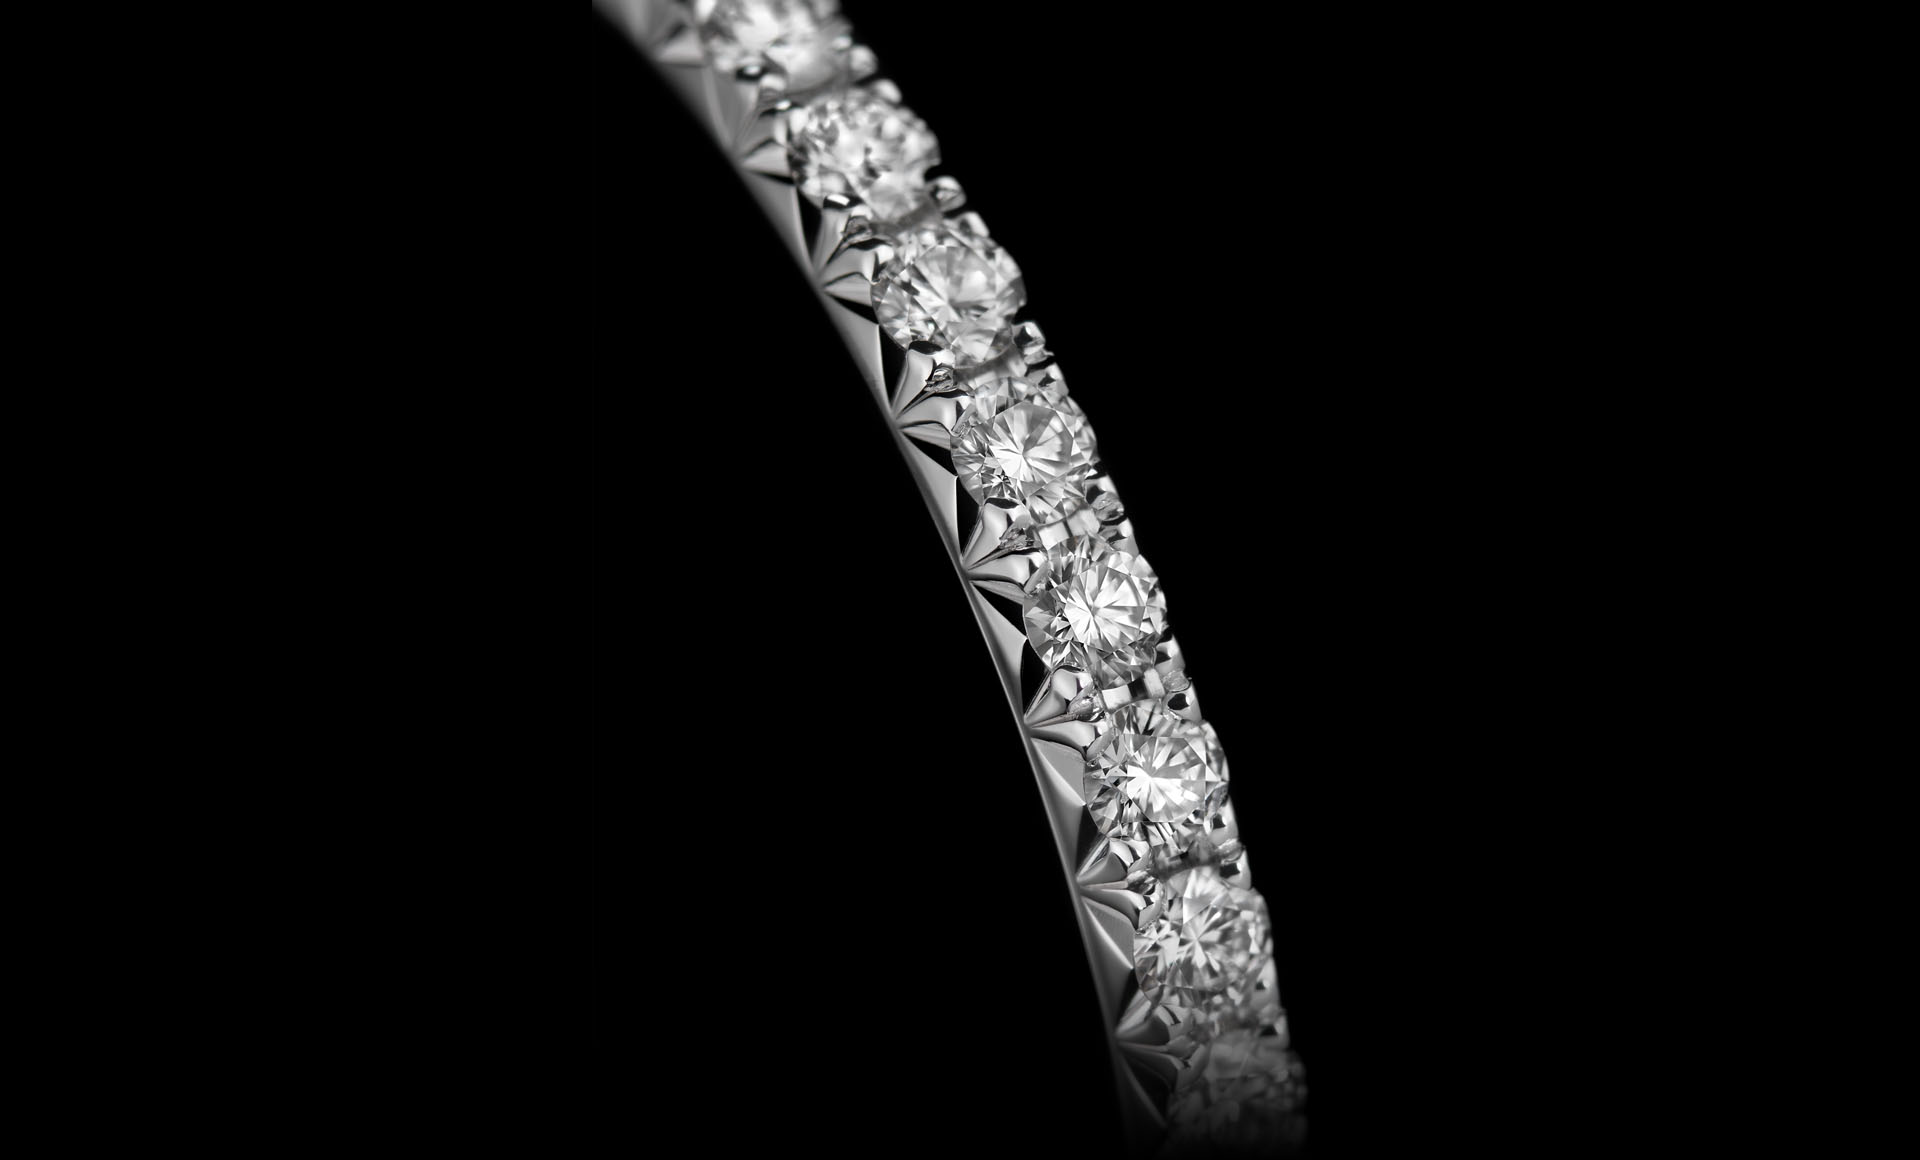 Close-up of the brilliantly cut diamonds on Montluc - Halo No.1 infinity ring